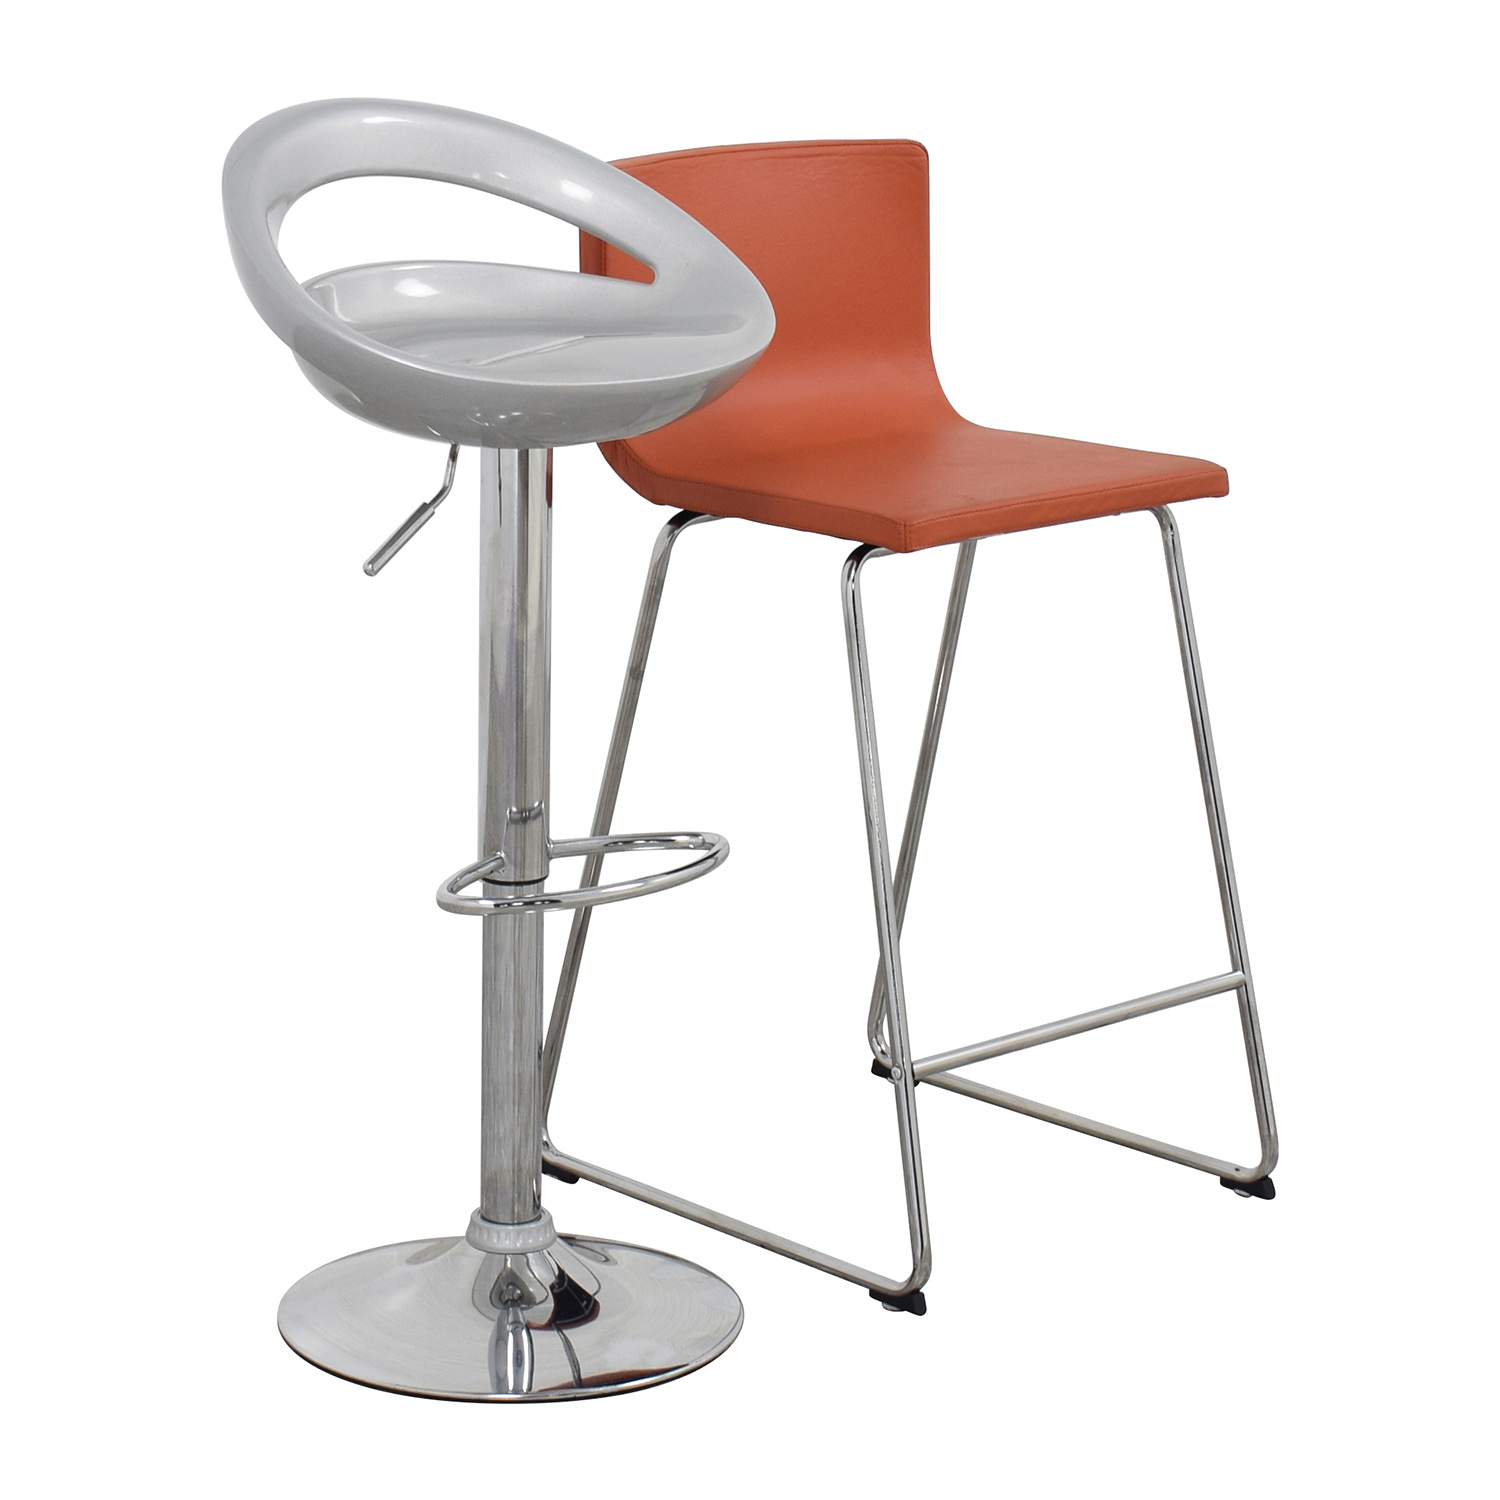 Pair of Modern Orange and Silver Bar Stools sale